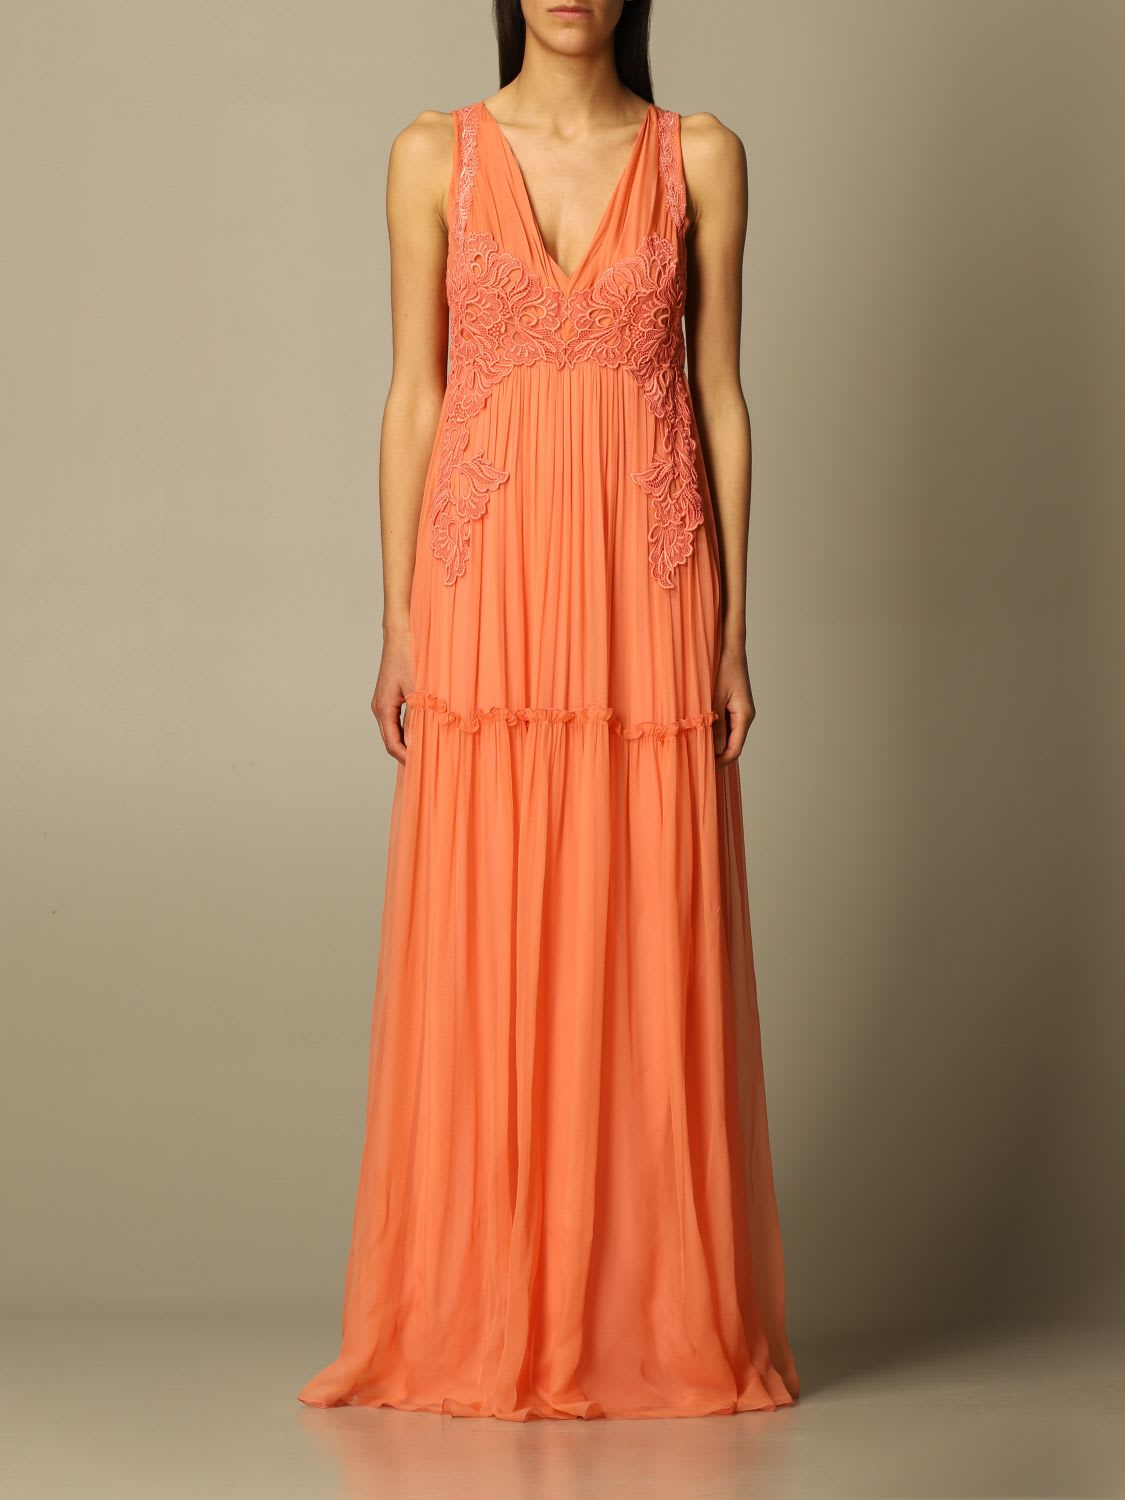 Alberta Ferretti Dress Alberta Ferretti Long Dress In Chiffon With Embroidery